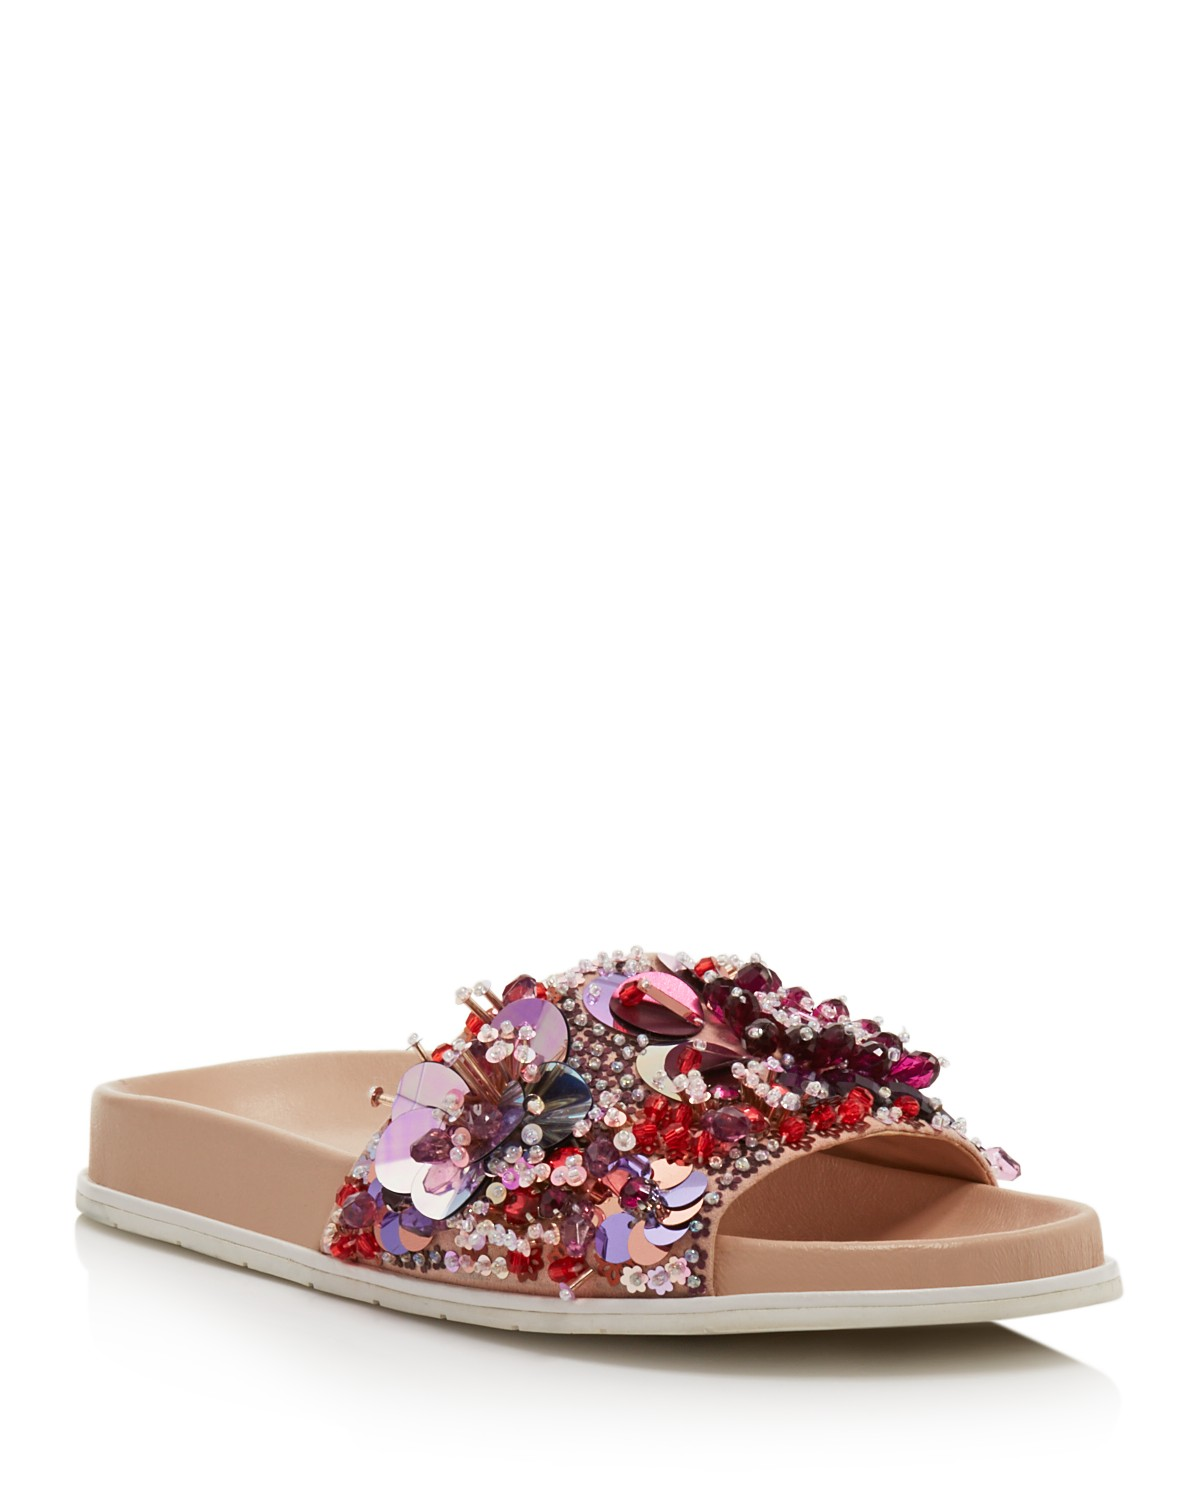 Aaa Quality Discount Newest Kenneth Cole Women's Xenia Sequin-Embellished Pool Slide Sandals dxALU